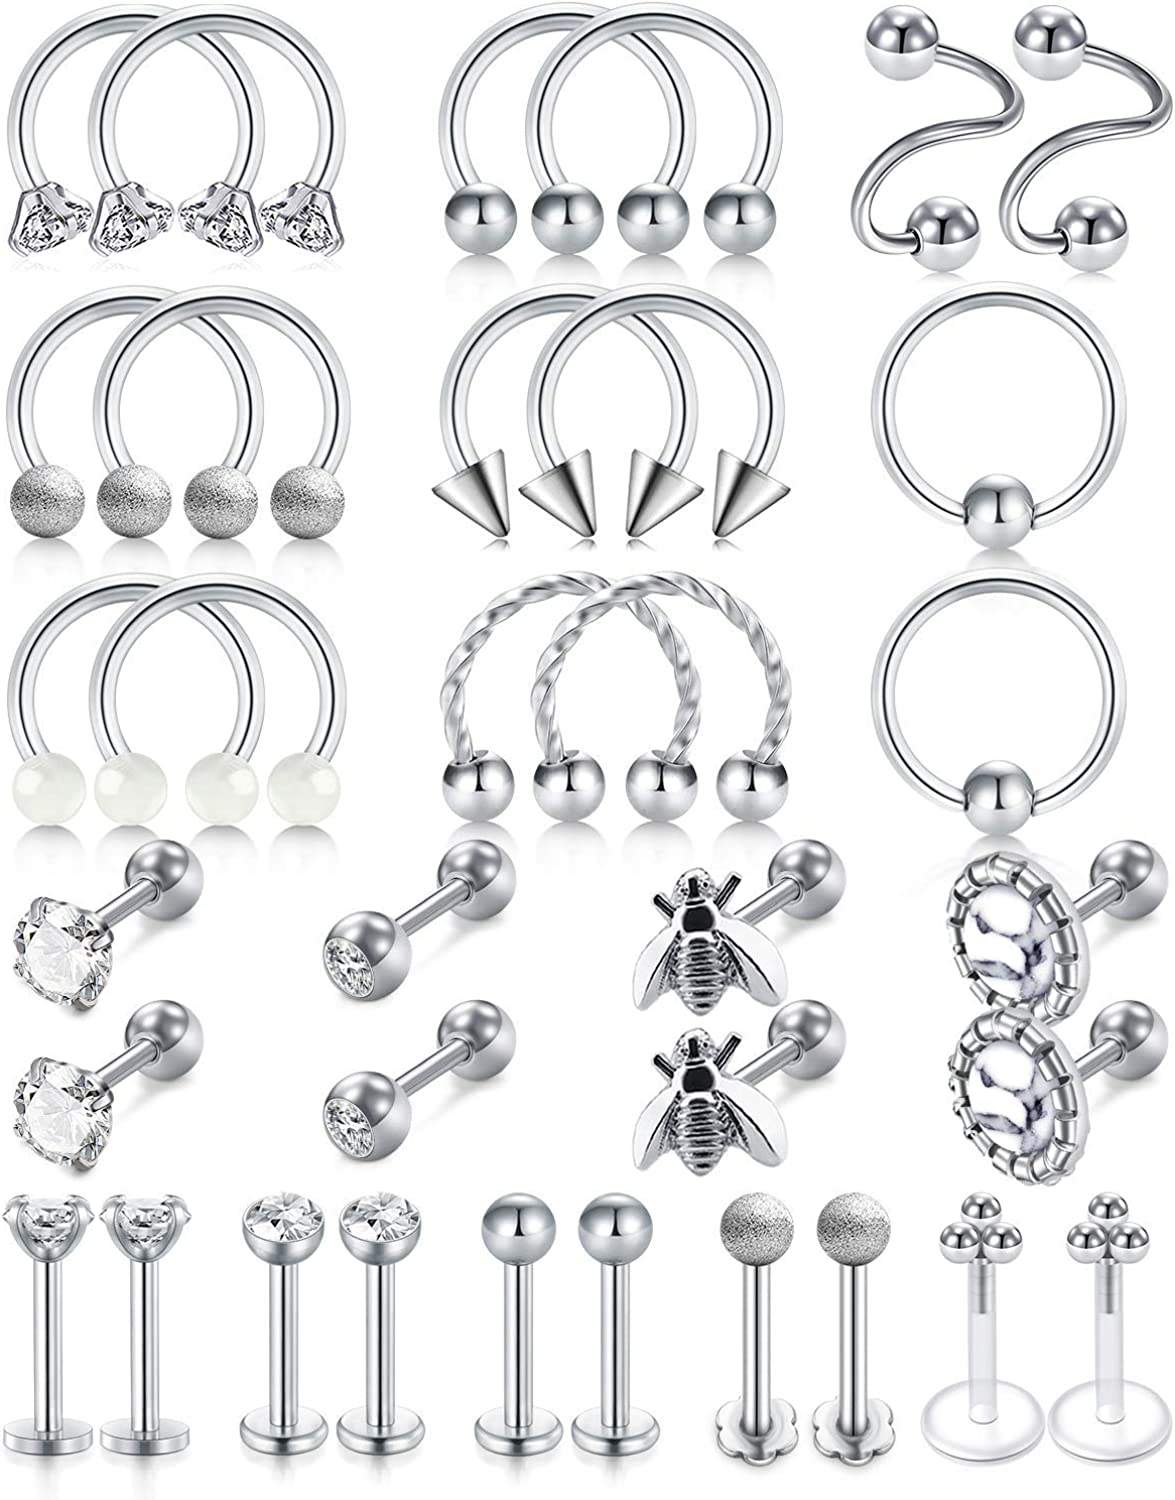 LAURITAMI 16G Tragus Earring Stainless Steel Horseshoe Barbell Forward Helix Hoop Cartilage Earring Lip Rings Labret Stud Eyebrow Ring Rook Daith Piercing Jewelry for Women